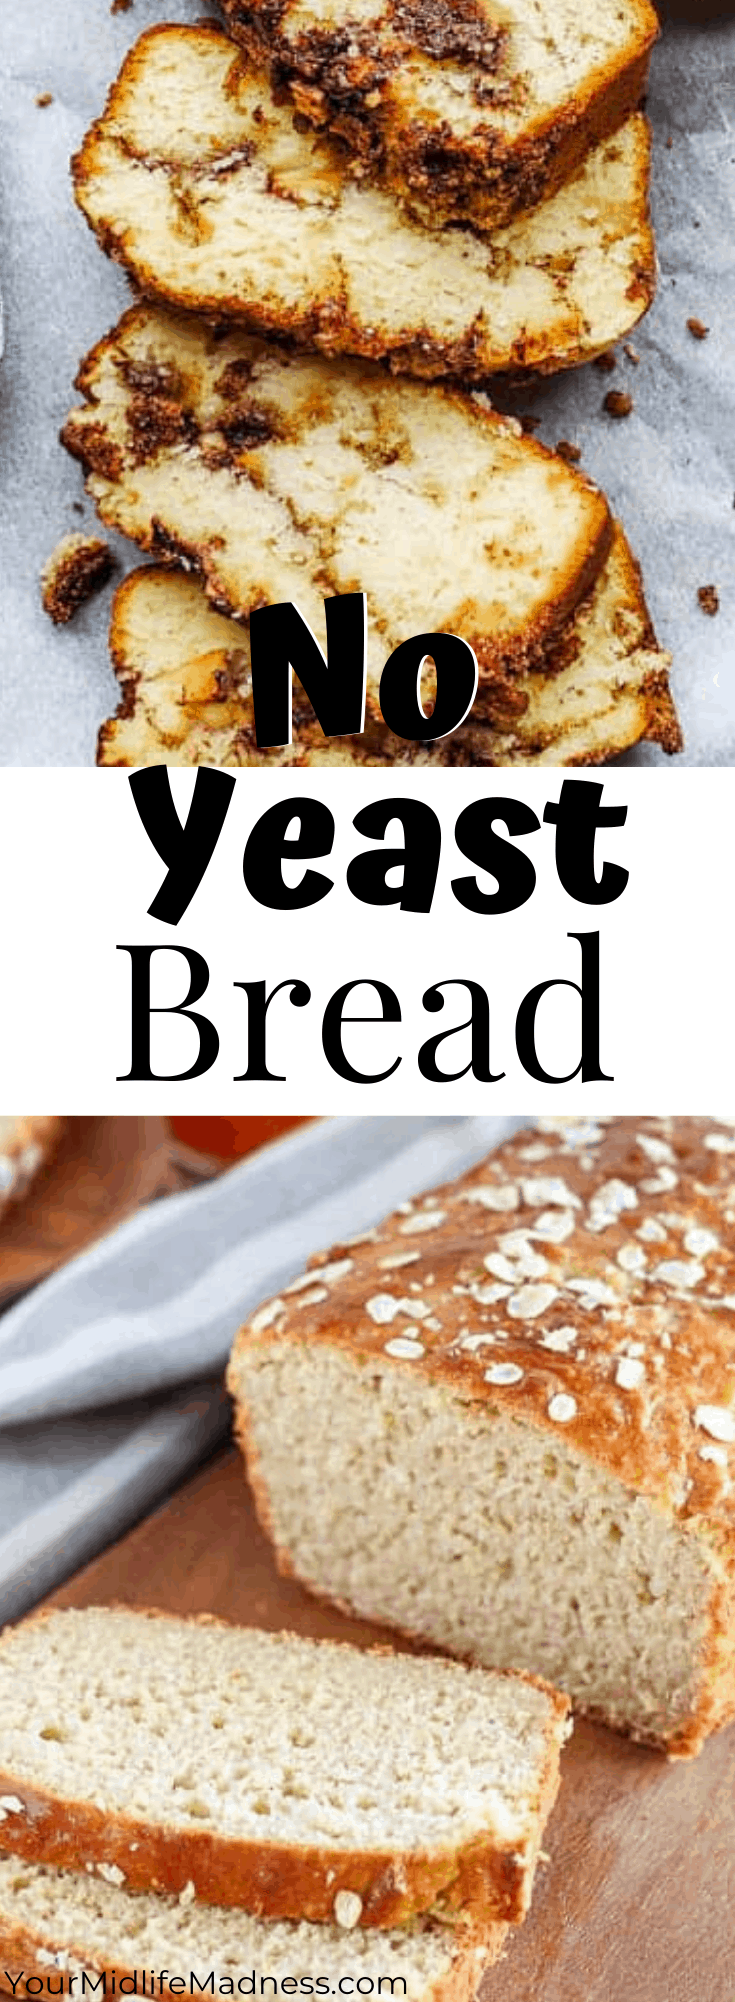 No yeast in the house? You're in the right place. I could live off of freshly baked bread with real butter spread generously on a slice cut just the right thickness. I don't bake bread as often as I did prior to my fitness journey, so actually having a pack of yeast that hasn't expired in my cabinet is a rare occurrence. Another fact about me is I love putting together great recipe lists such as these no yeast bread recipes as my go-to when looking for the perfect bread directions. Enjoy this variety of recipes that will surely fill any bread craving you are having right now!  via @fitfoundme